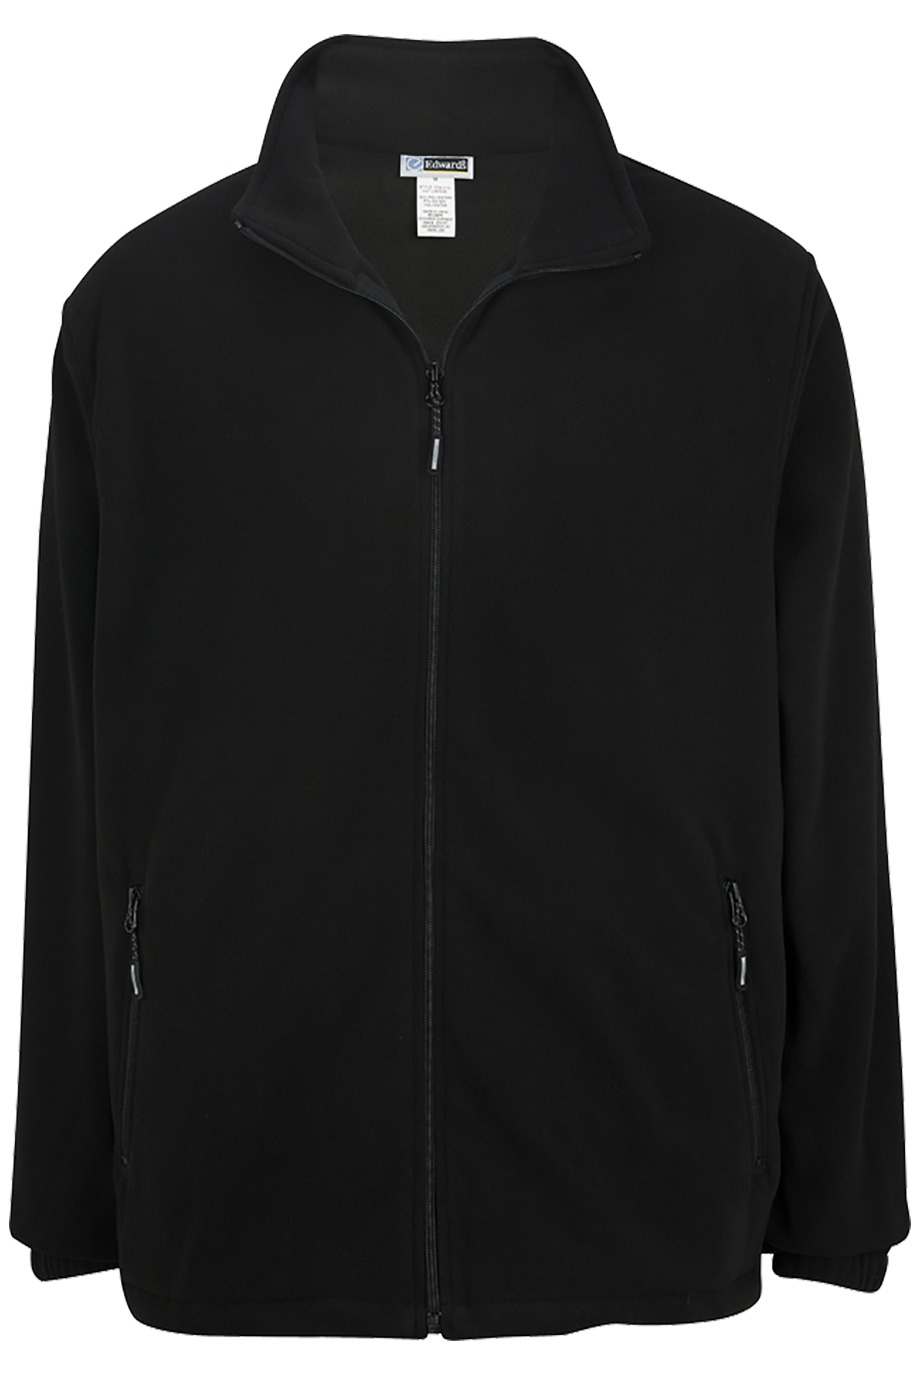 Edwards Garment 3450 - Men's Mircofleece Jacket